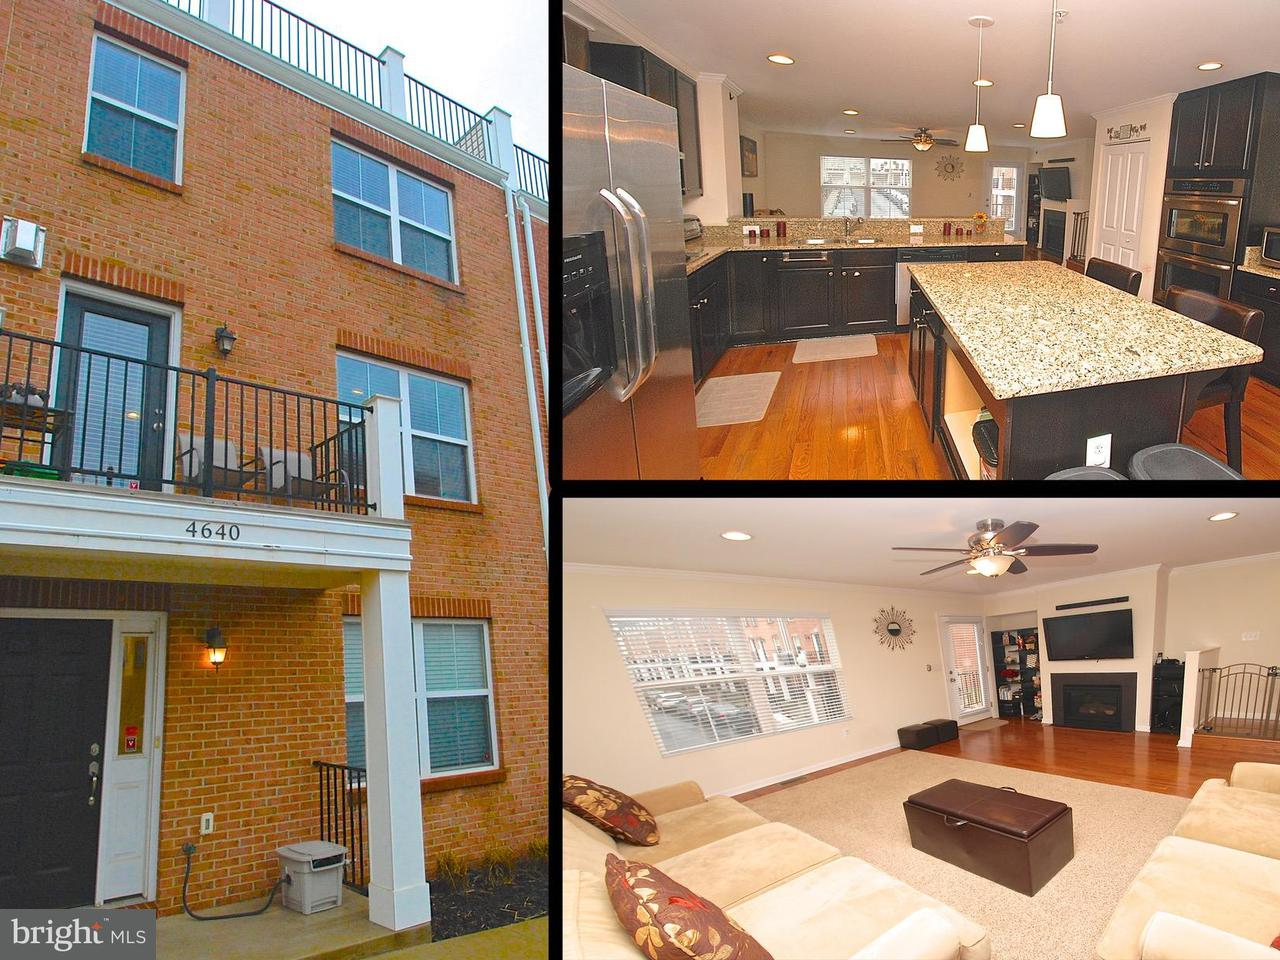 Single Family for Sale at 4640 Dillon Pl Baltimore, Maryland 21224 United States